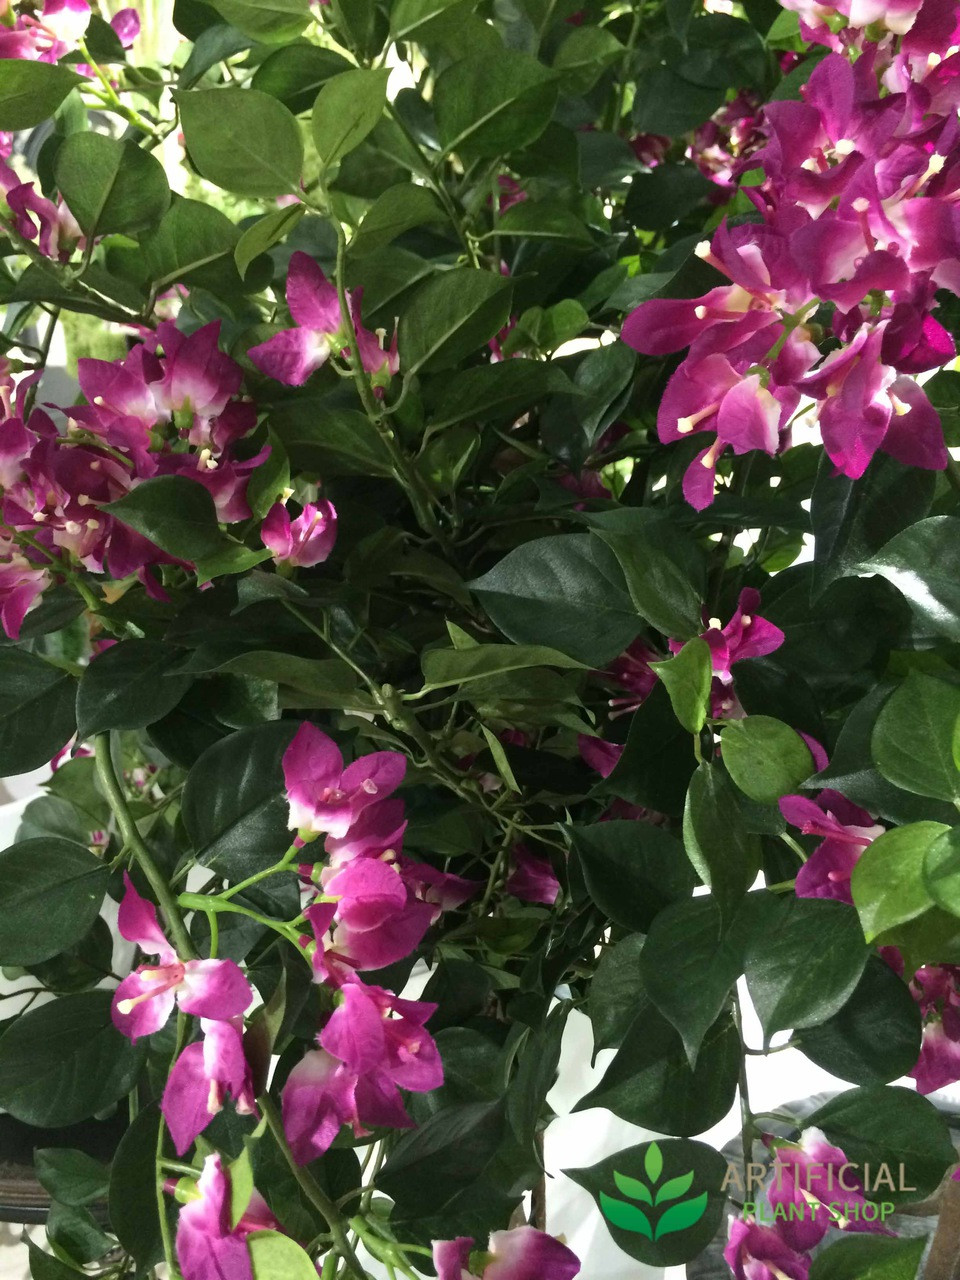 Artificial Bougainvillea tree leaves